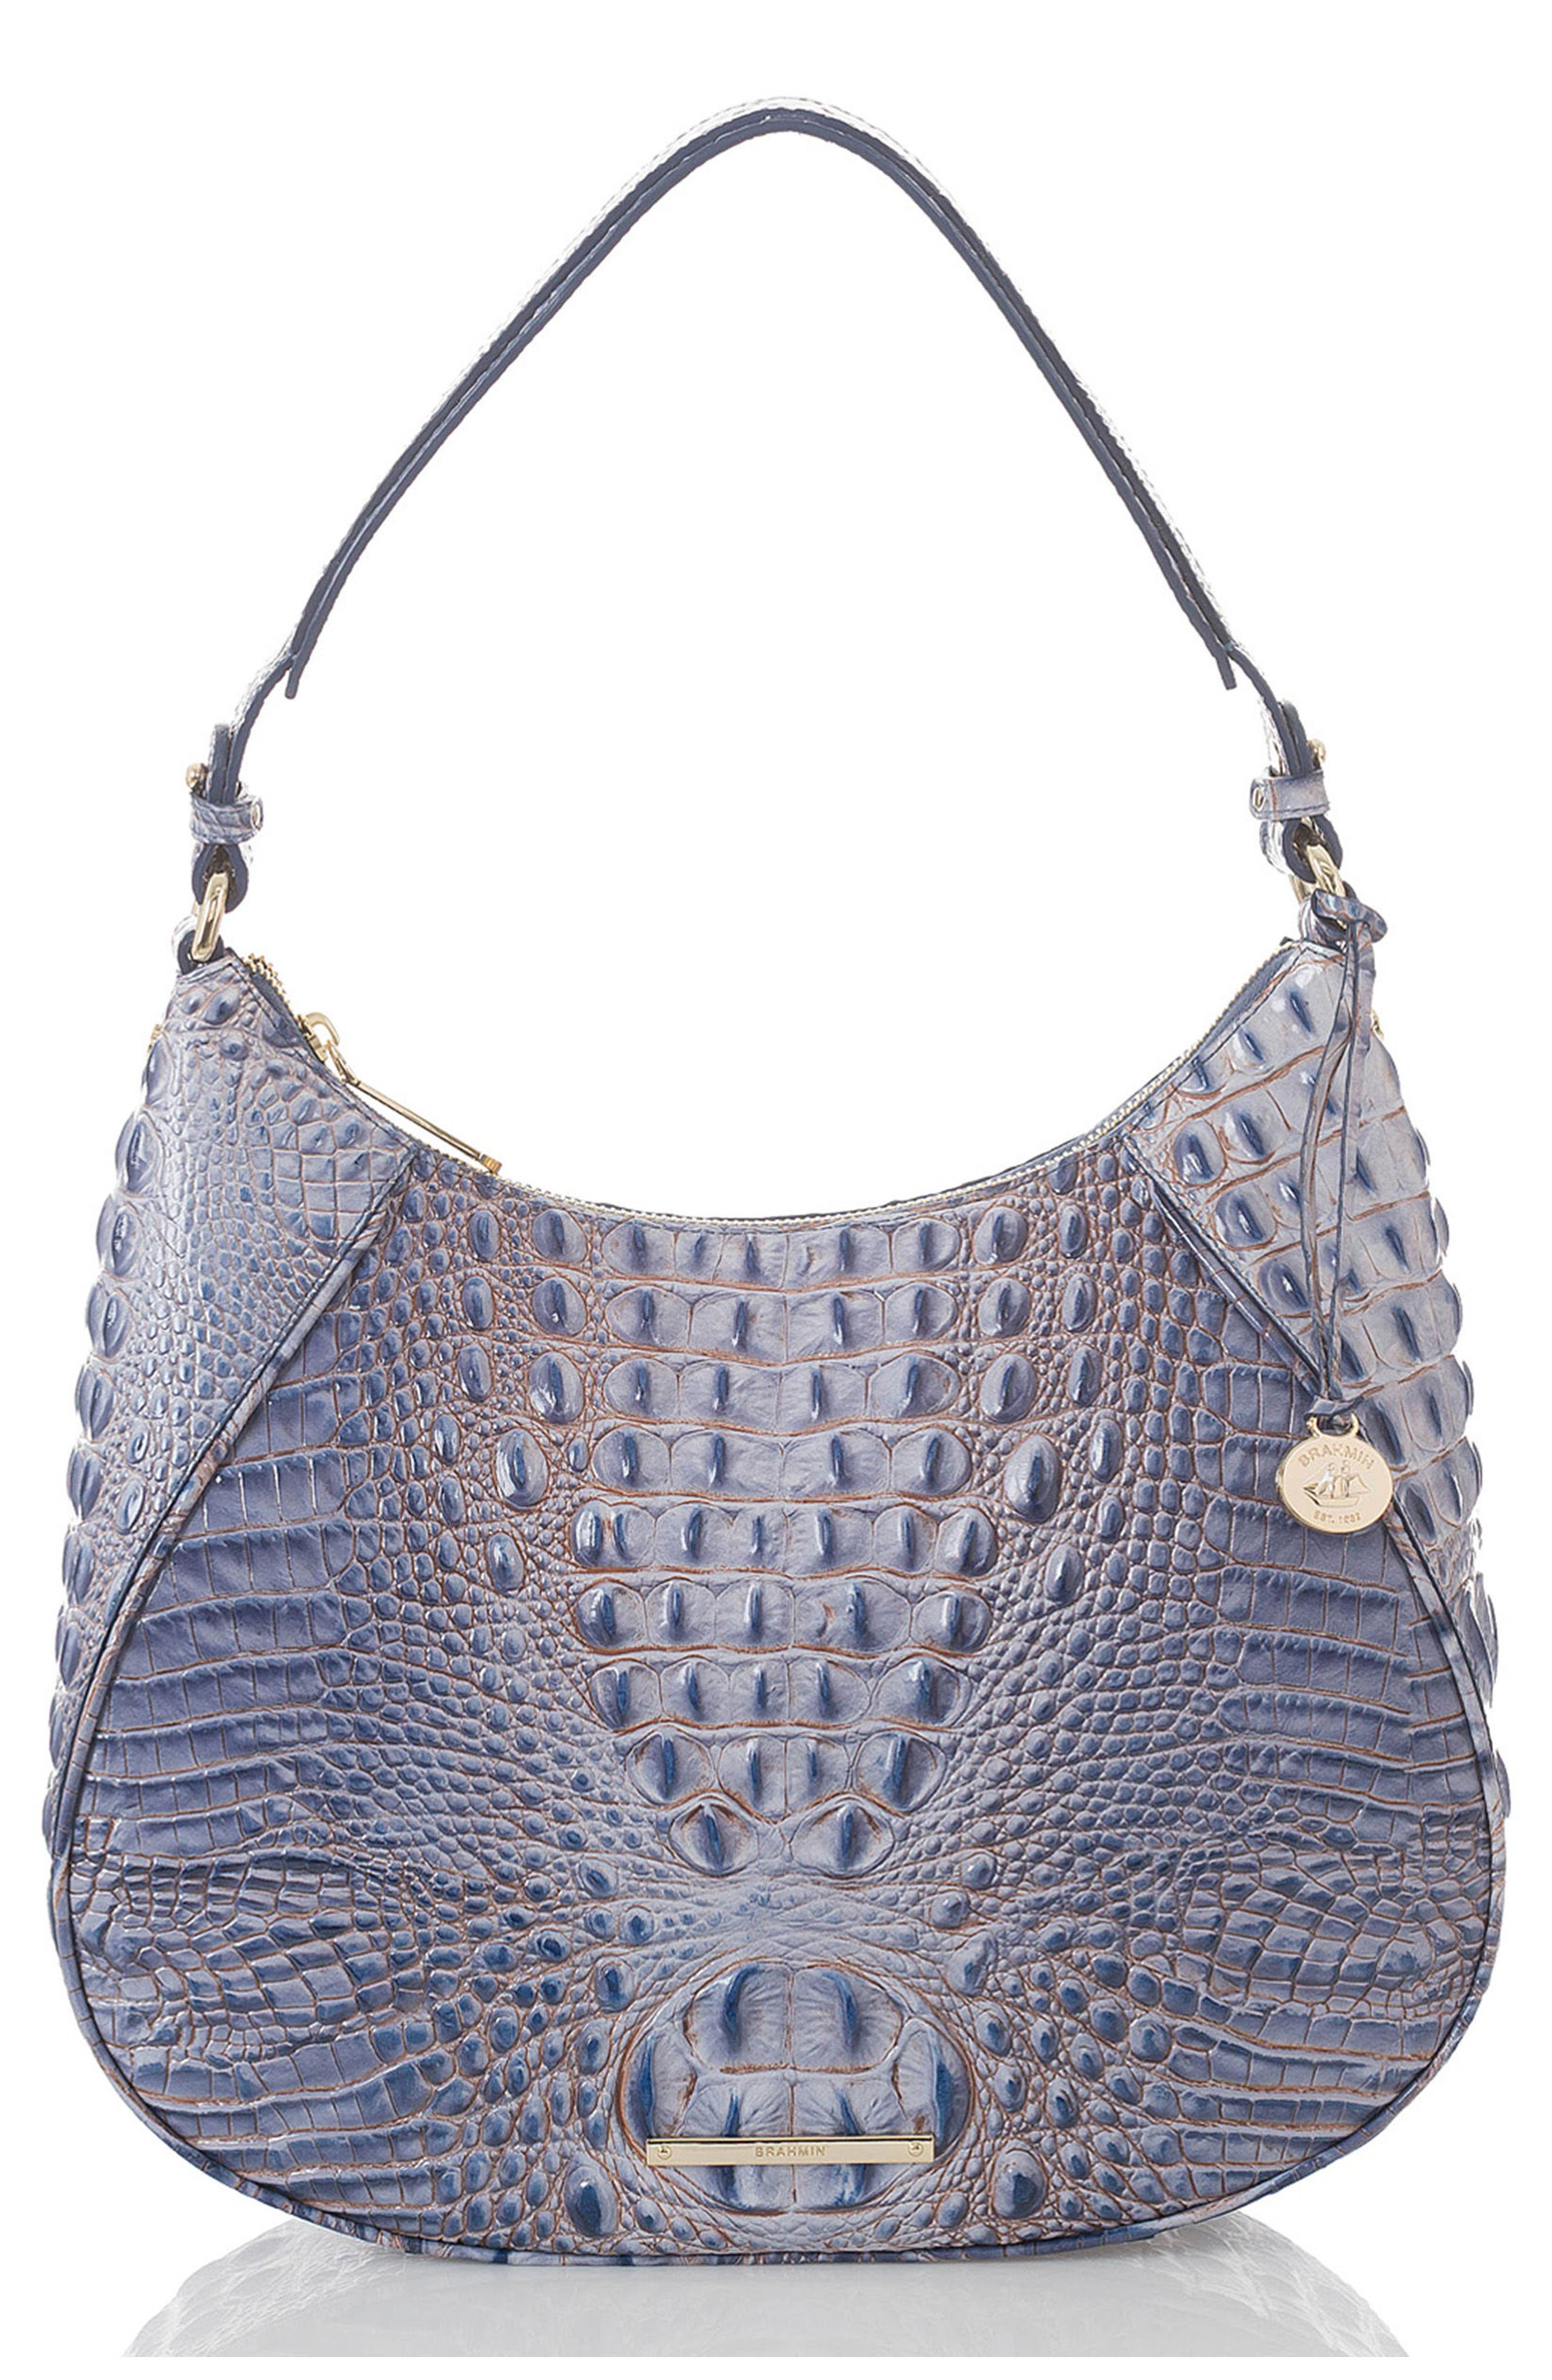 Melbourne Amira Shoulder Bag,                             Main thumbnail 1, color,                             Washed Indigo